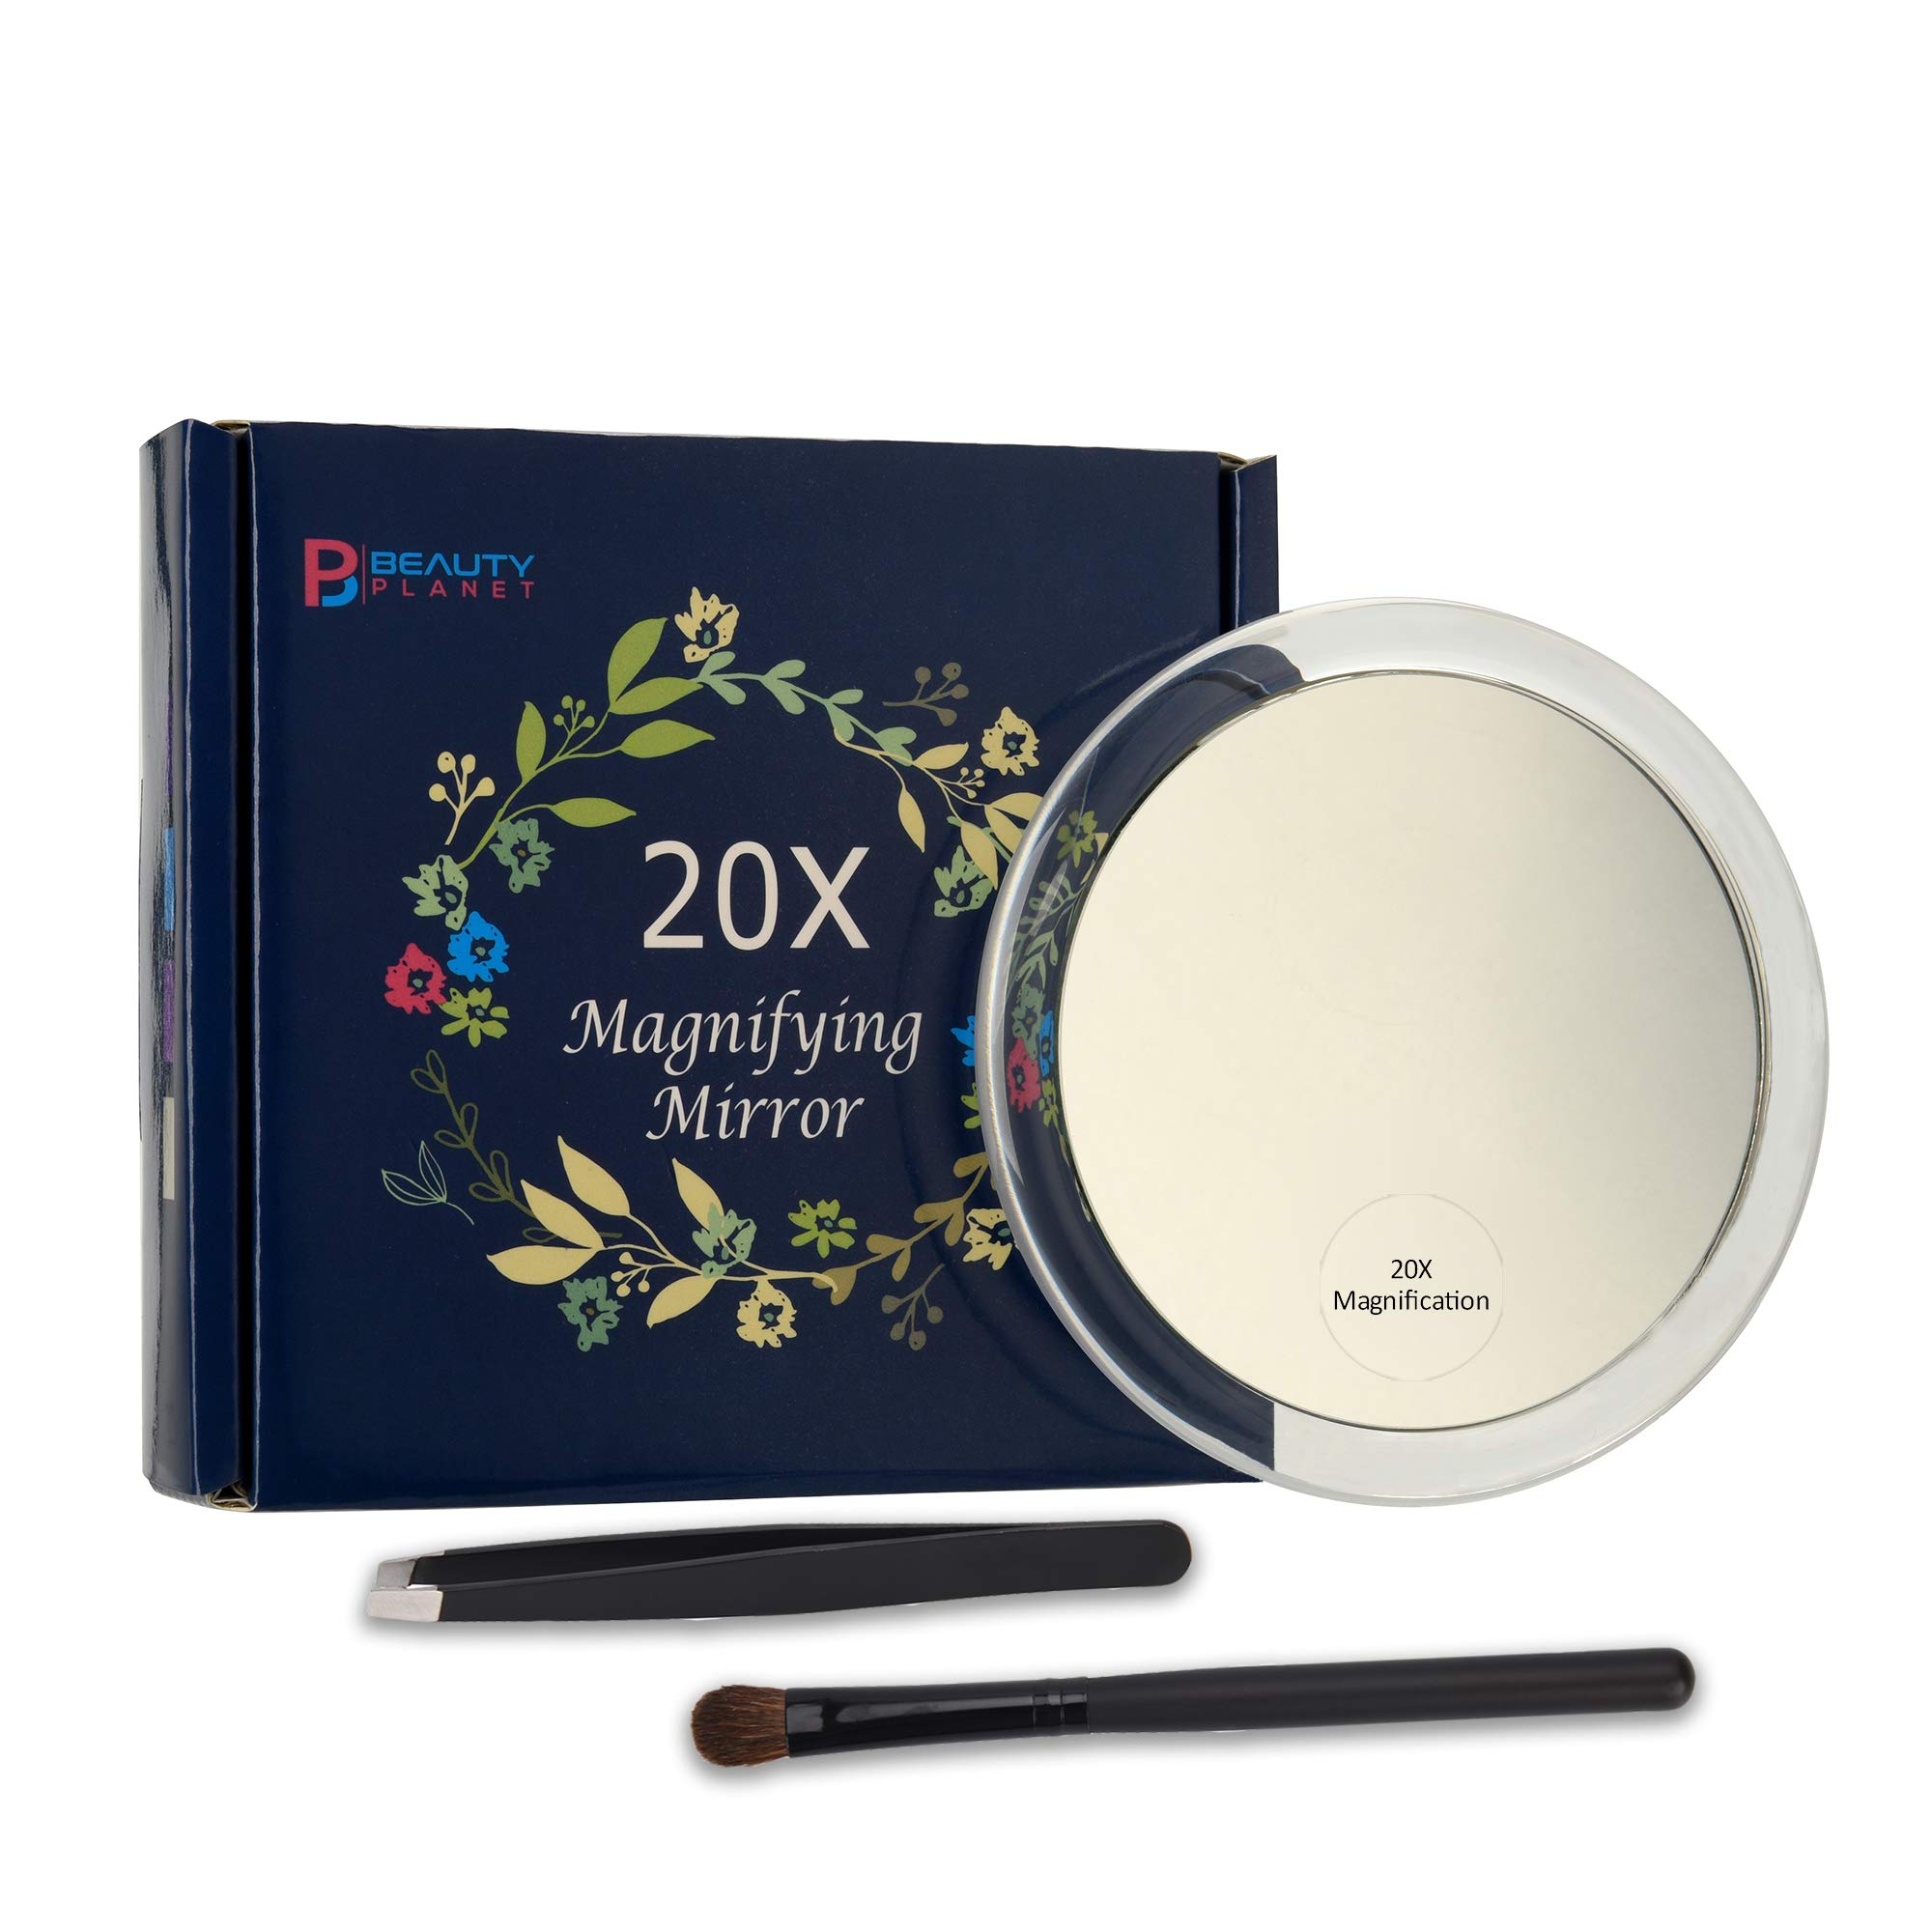 20x Magnifying Mirror with 3 Suction Cups, Use for Makeup Application, Tweezing, and Blackhead/Blemish Removal.Comes with 1PC Storage Bag, 1PC Tweezer, 1PC Reminder Card. 4Inches. by Beauty Planet